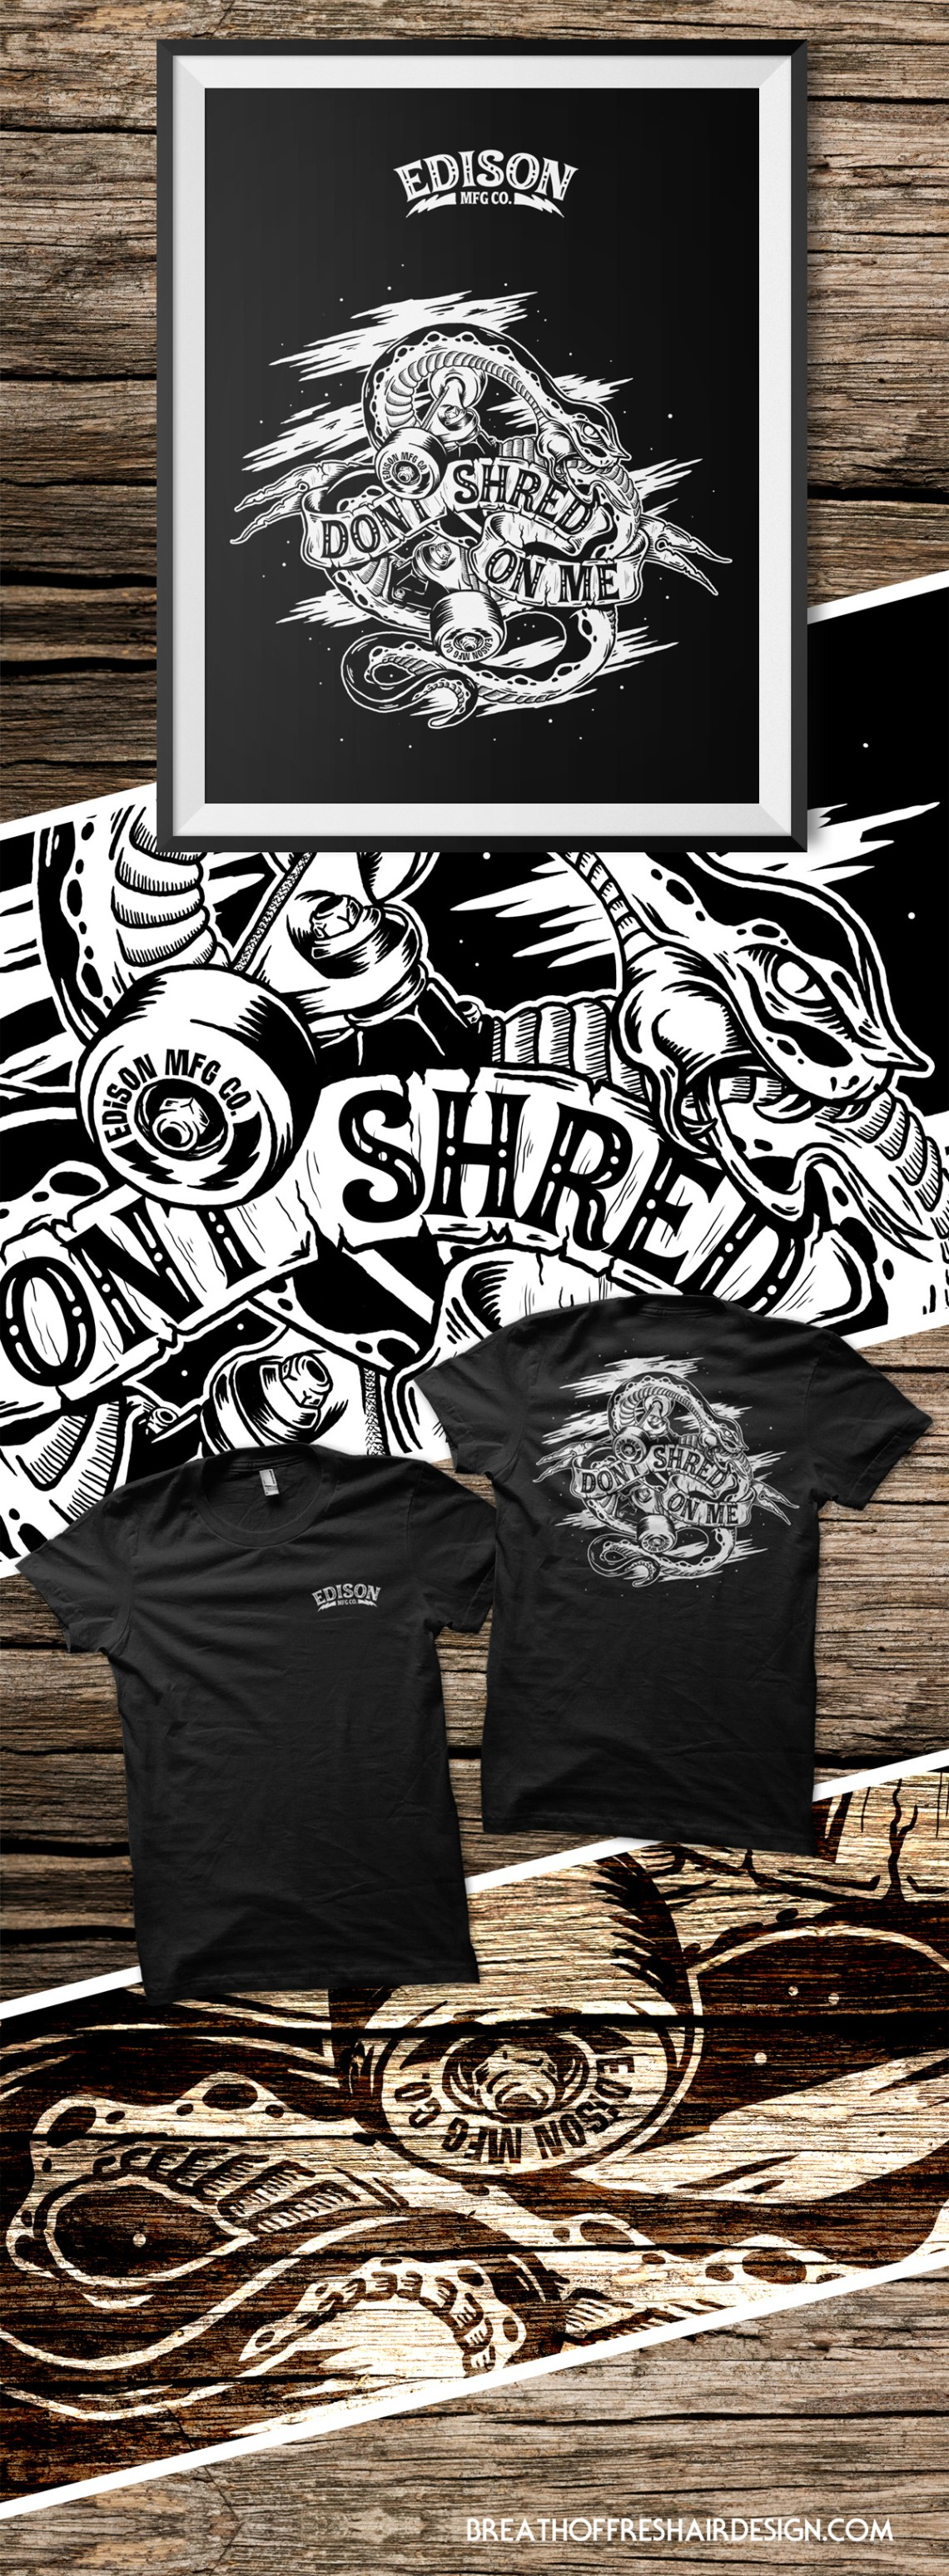 Edison MFG, Don't Shred On Me, Illustration, Graphic Design, Toronto, Snake, Skateboariding, T-shirt, Graphic, trucks, wheels, art